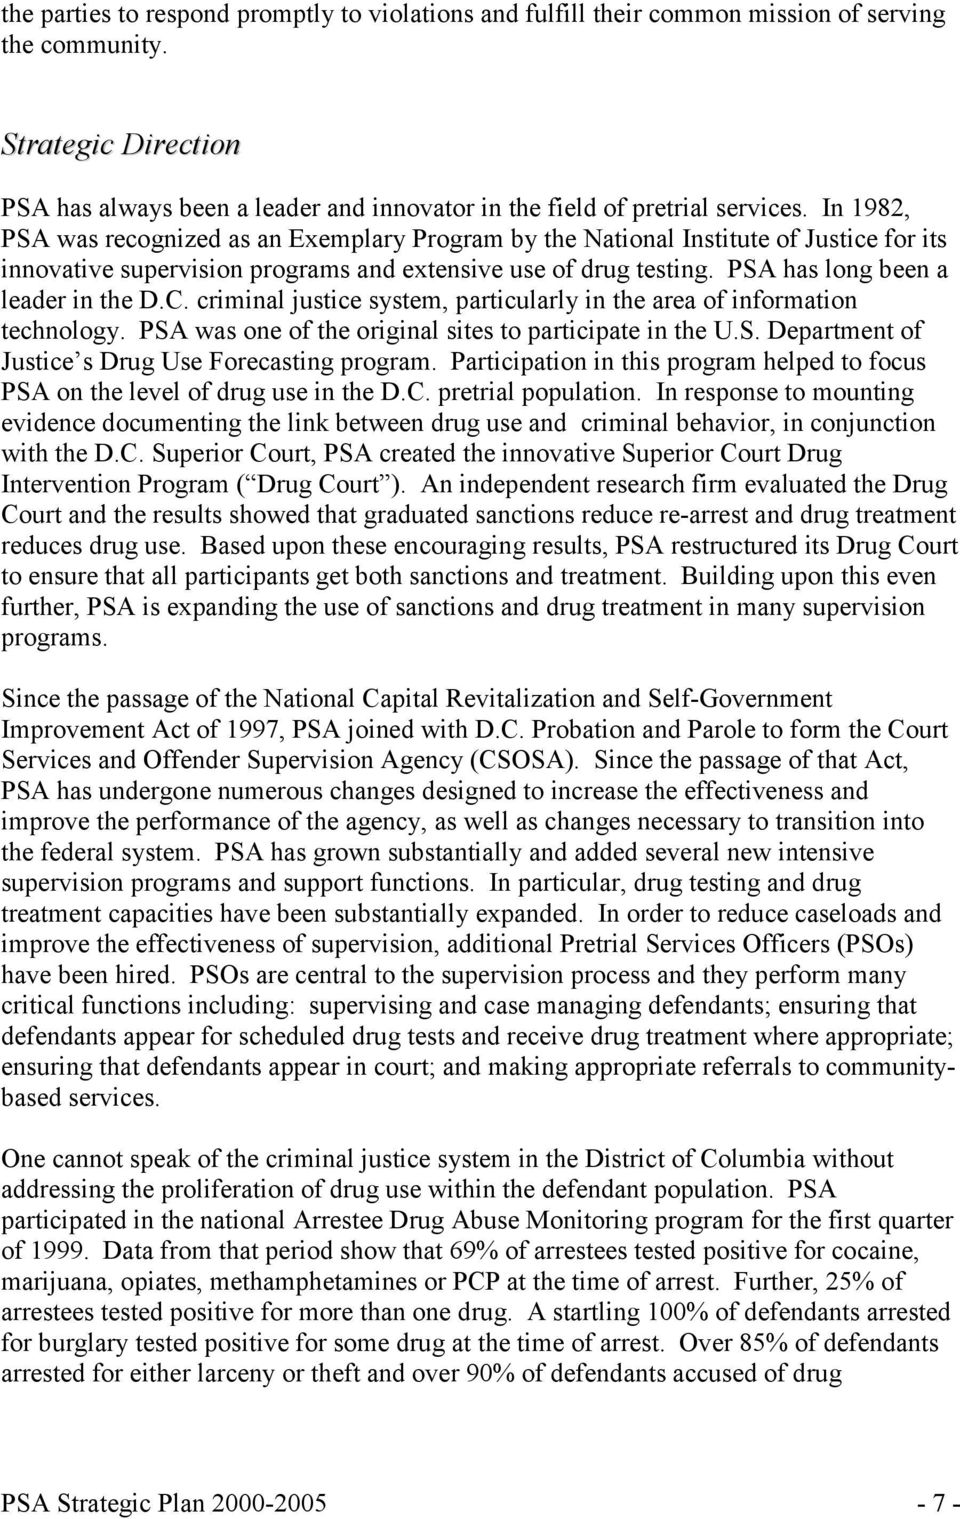 In 1982, PSA was recognized as an Exemplary Program by the National Institute of Justice for its innovative supervision programs and extensive use of drug testing. PSA has long been a leader in the D.